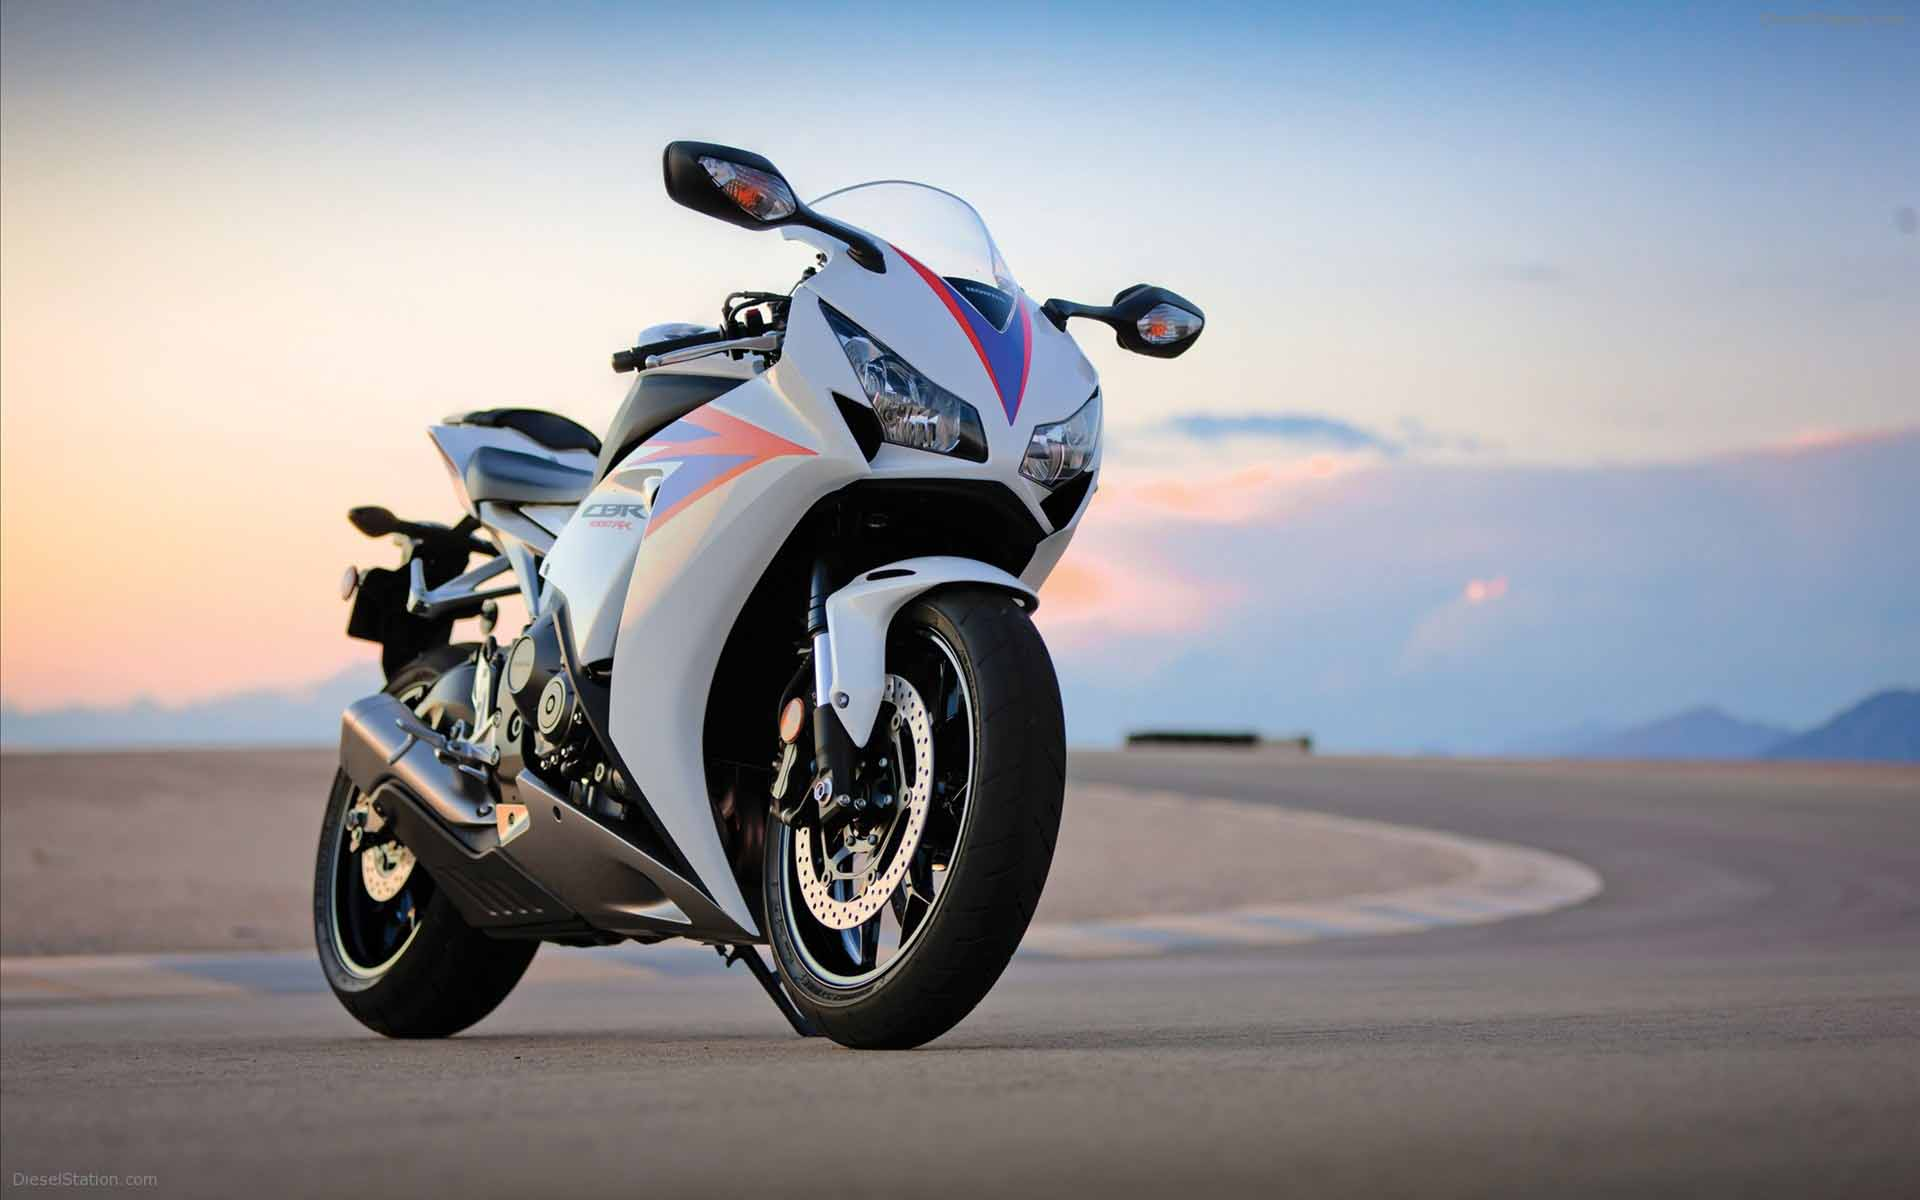 Bmw Car And Bike Wallpaper Nice Honda Bike Hd Wallpaper My Site